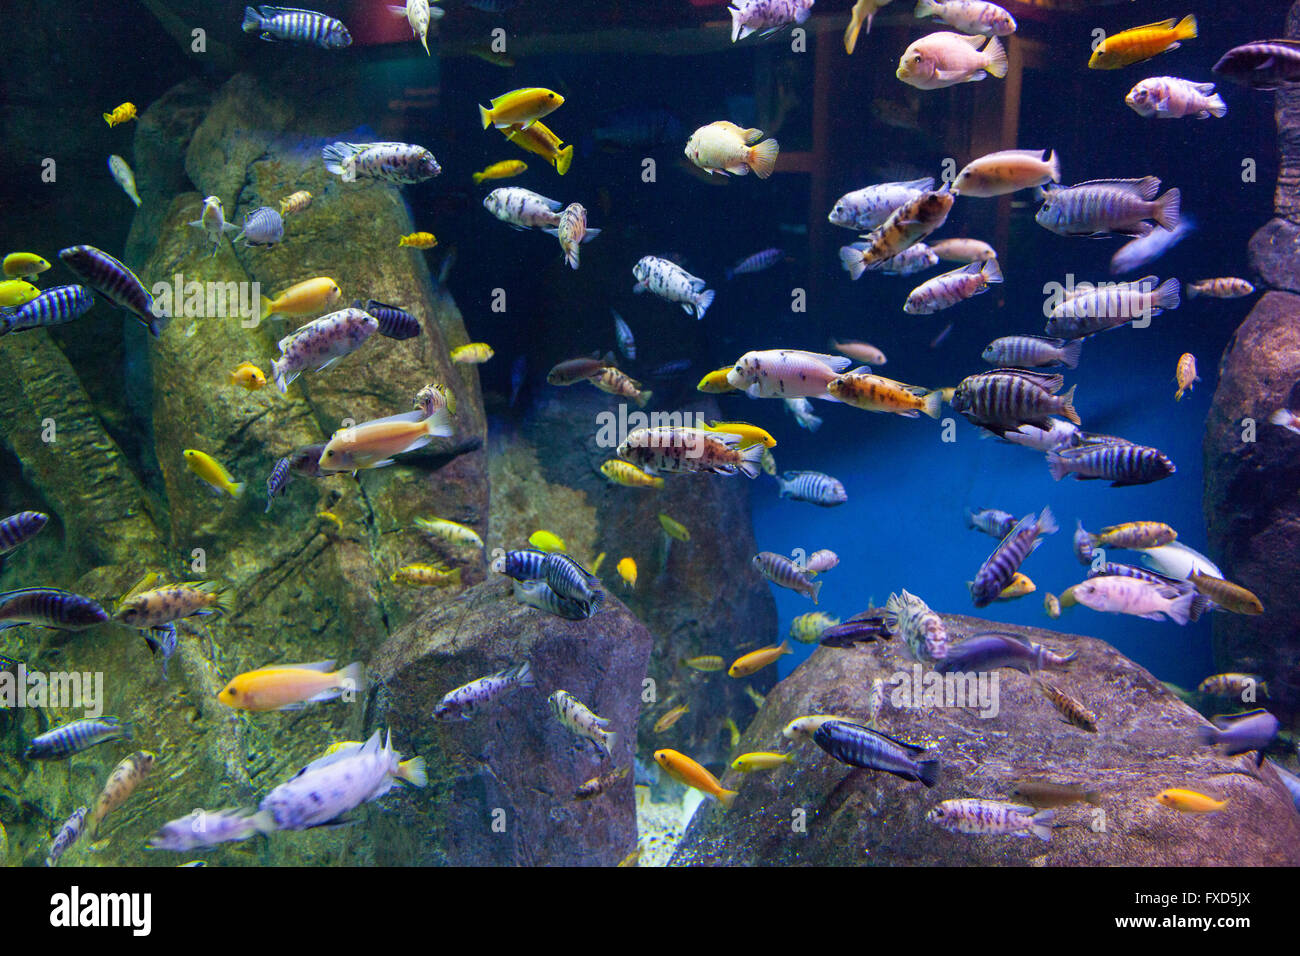 lake malawi cichlids new york aquarium coney island brooklyn new stock photo 102322722 alamy. Black Bedroom Furniture Sets. Home Design Ideas